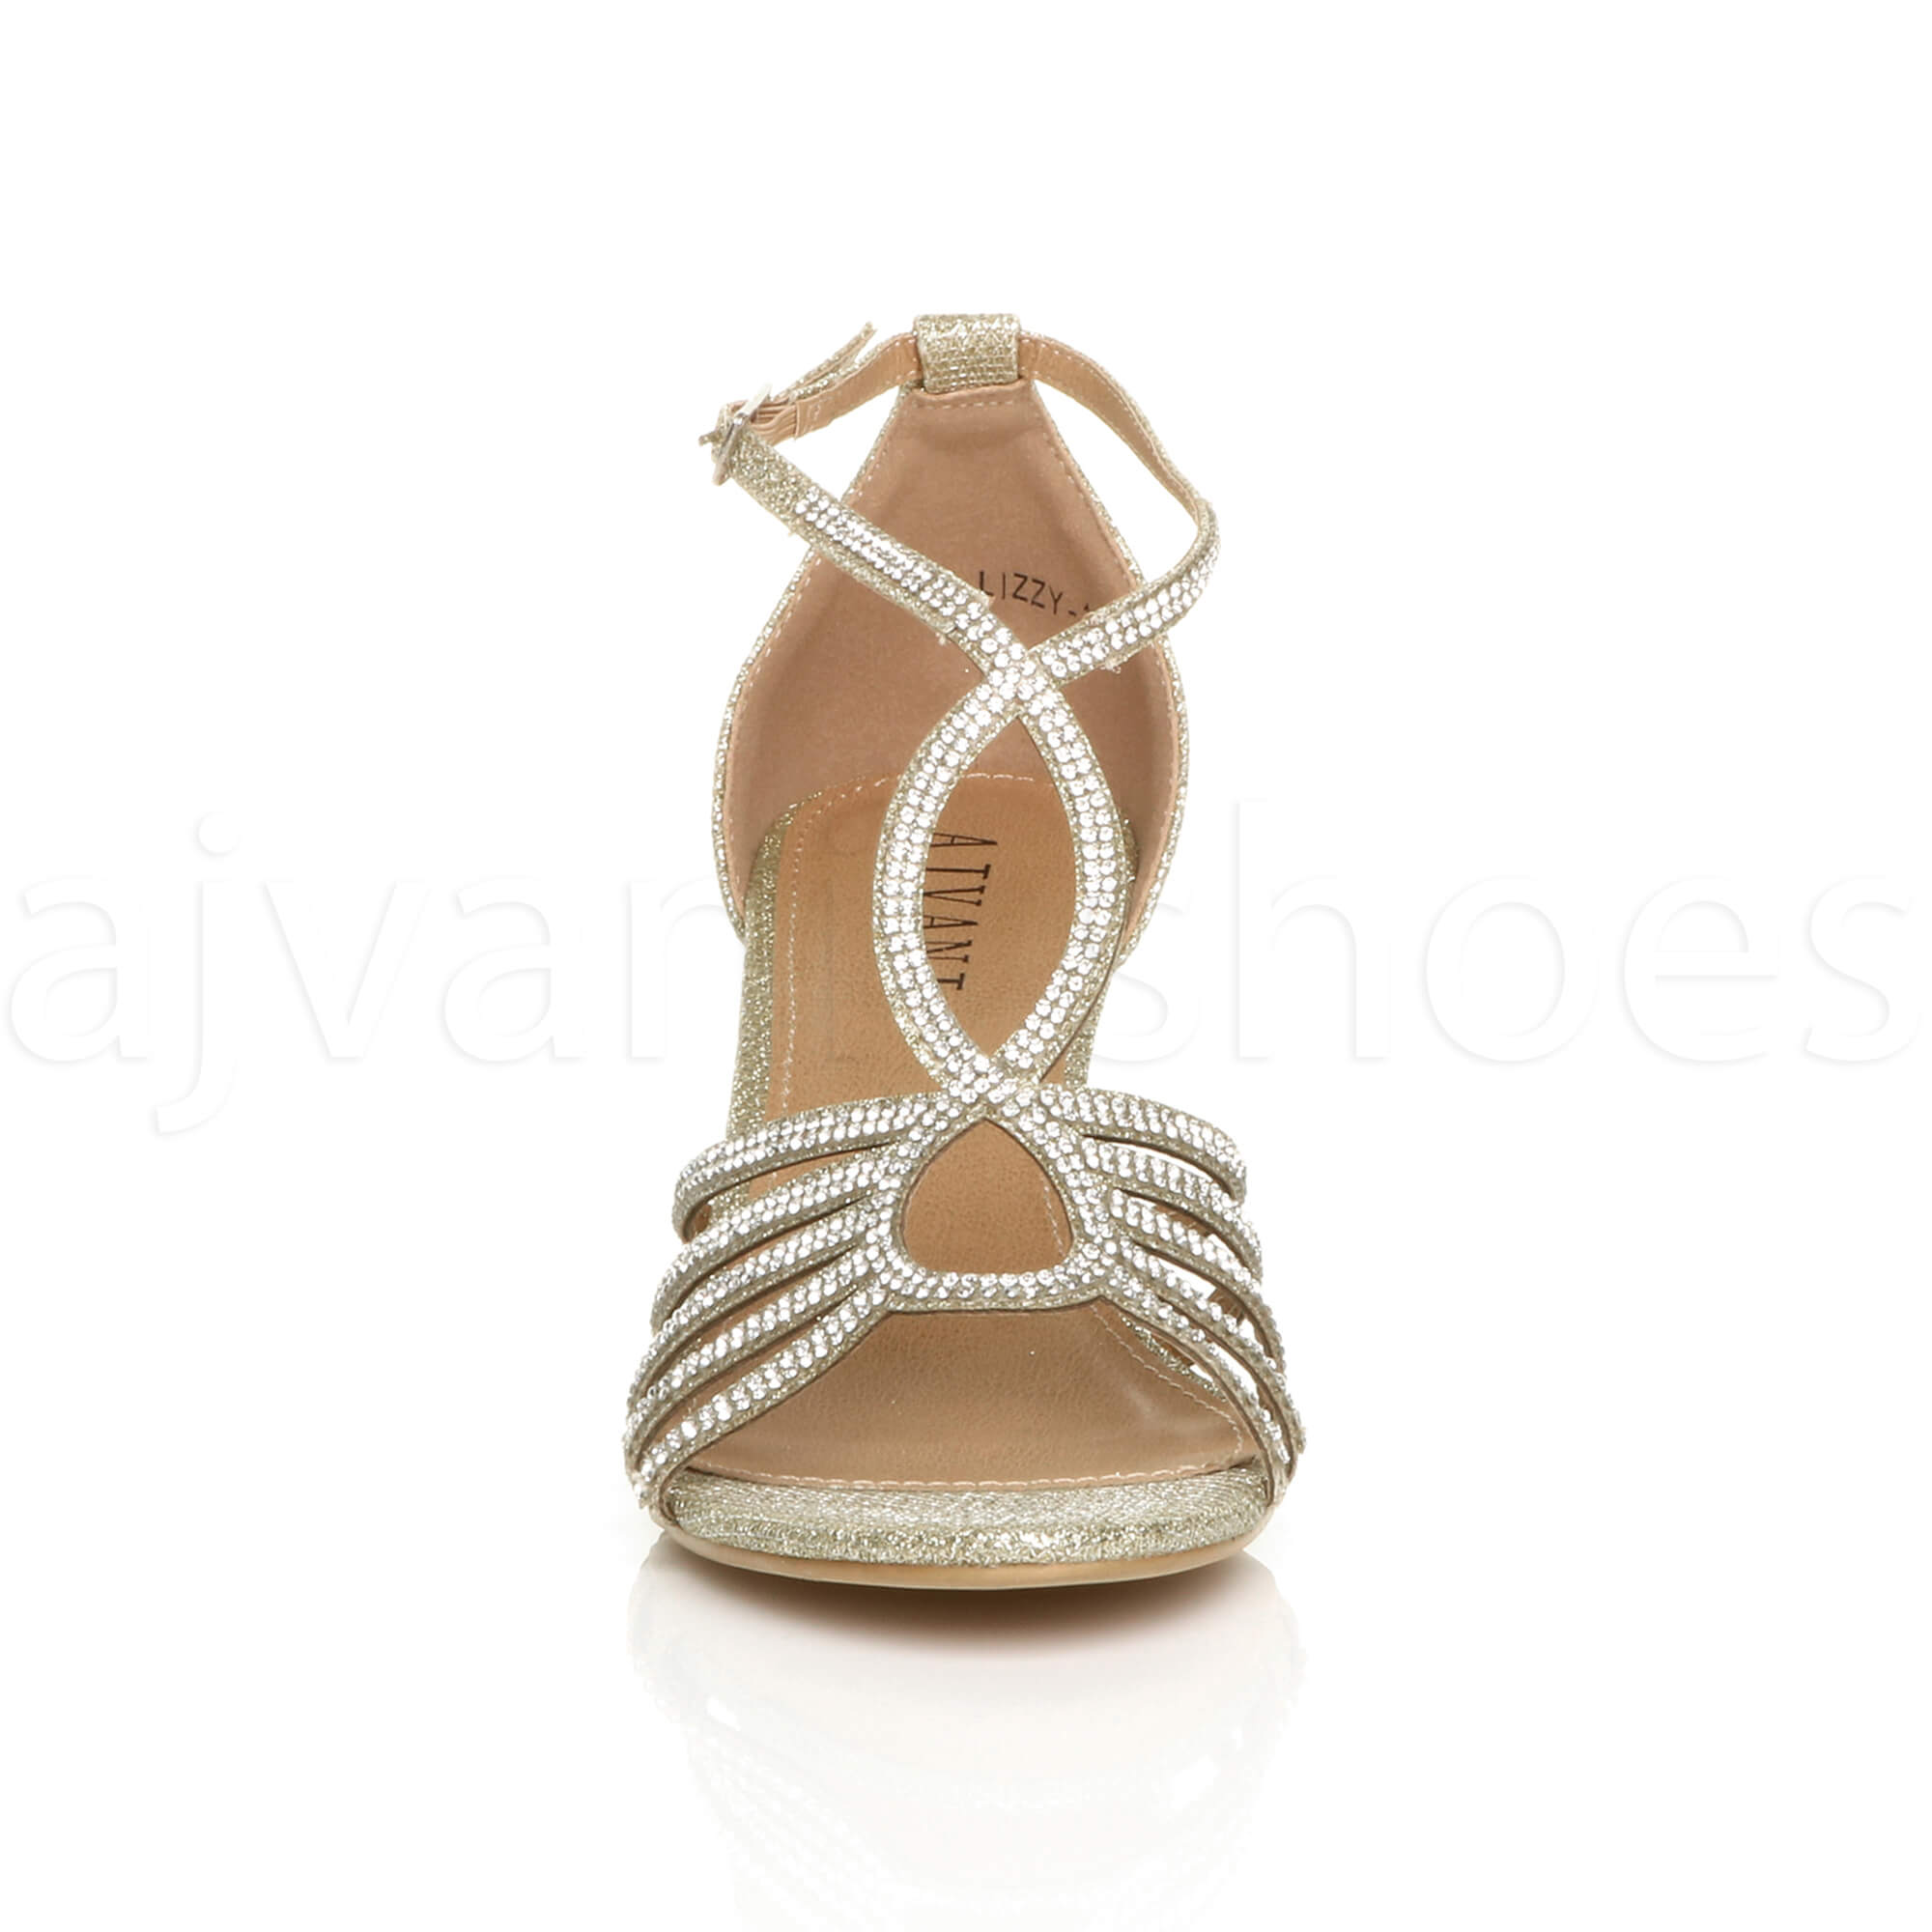 WOMENS-LADIES-MID-HEEL-STRAPPY-DIAMANTE-WEDDING-EVENING-T-BAR-SANDALS-SHOES-SIZE thumbnail 18